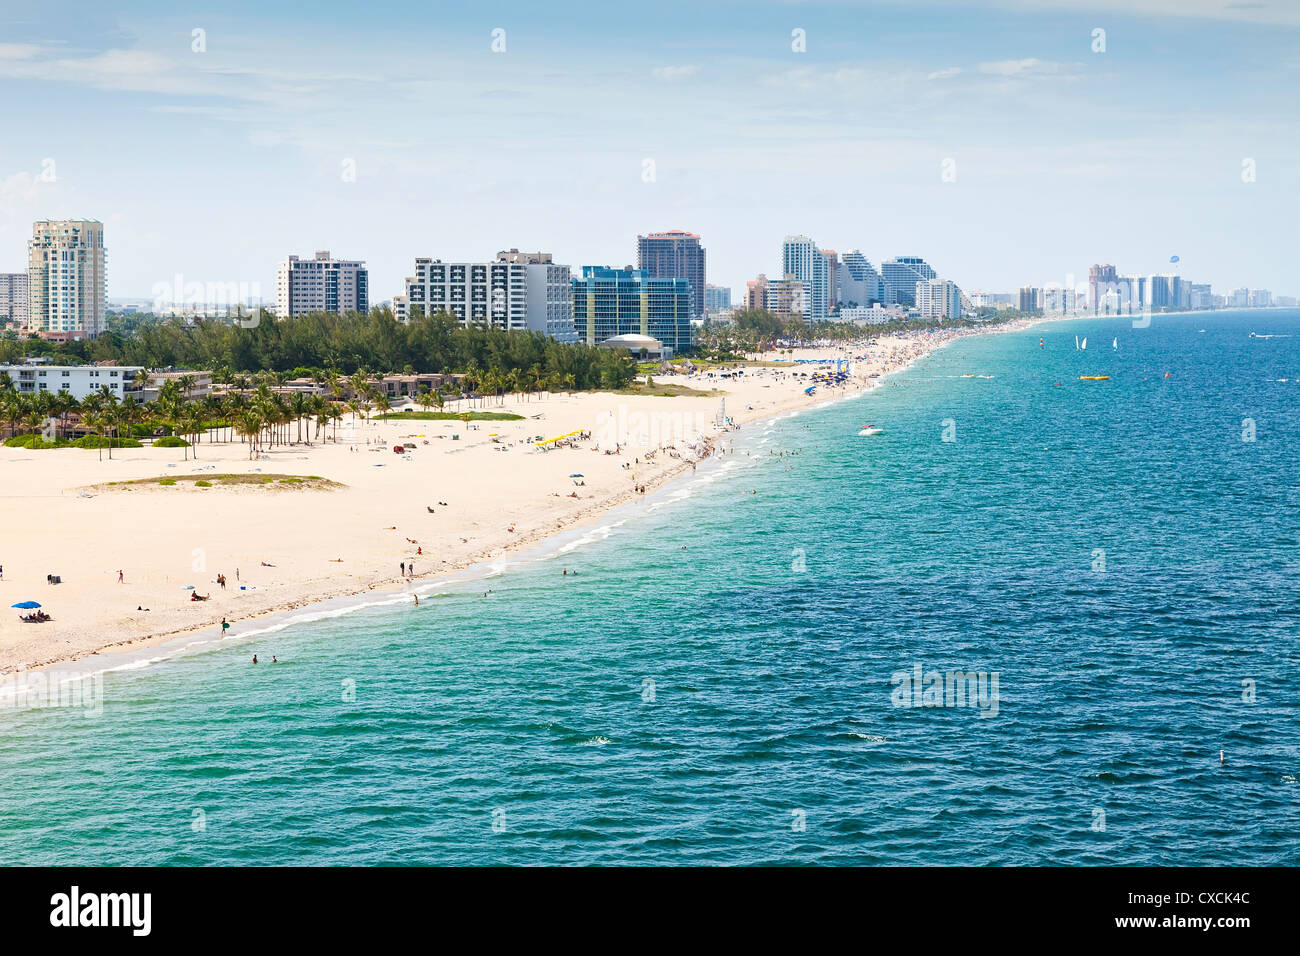 Aerial view of Fort Lauderdale Beach in Ft. Lauderdale, Florida - Stock Image